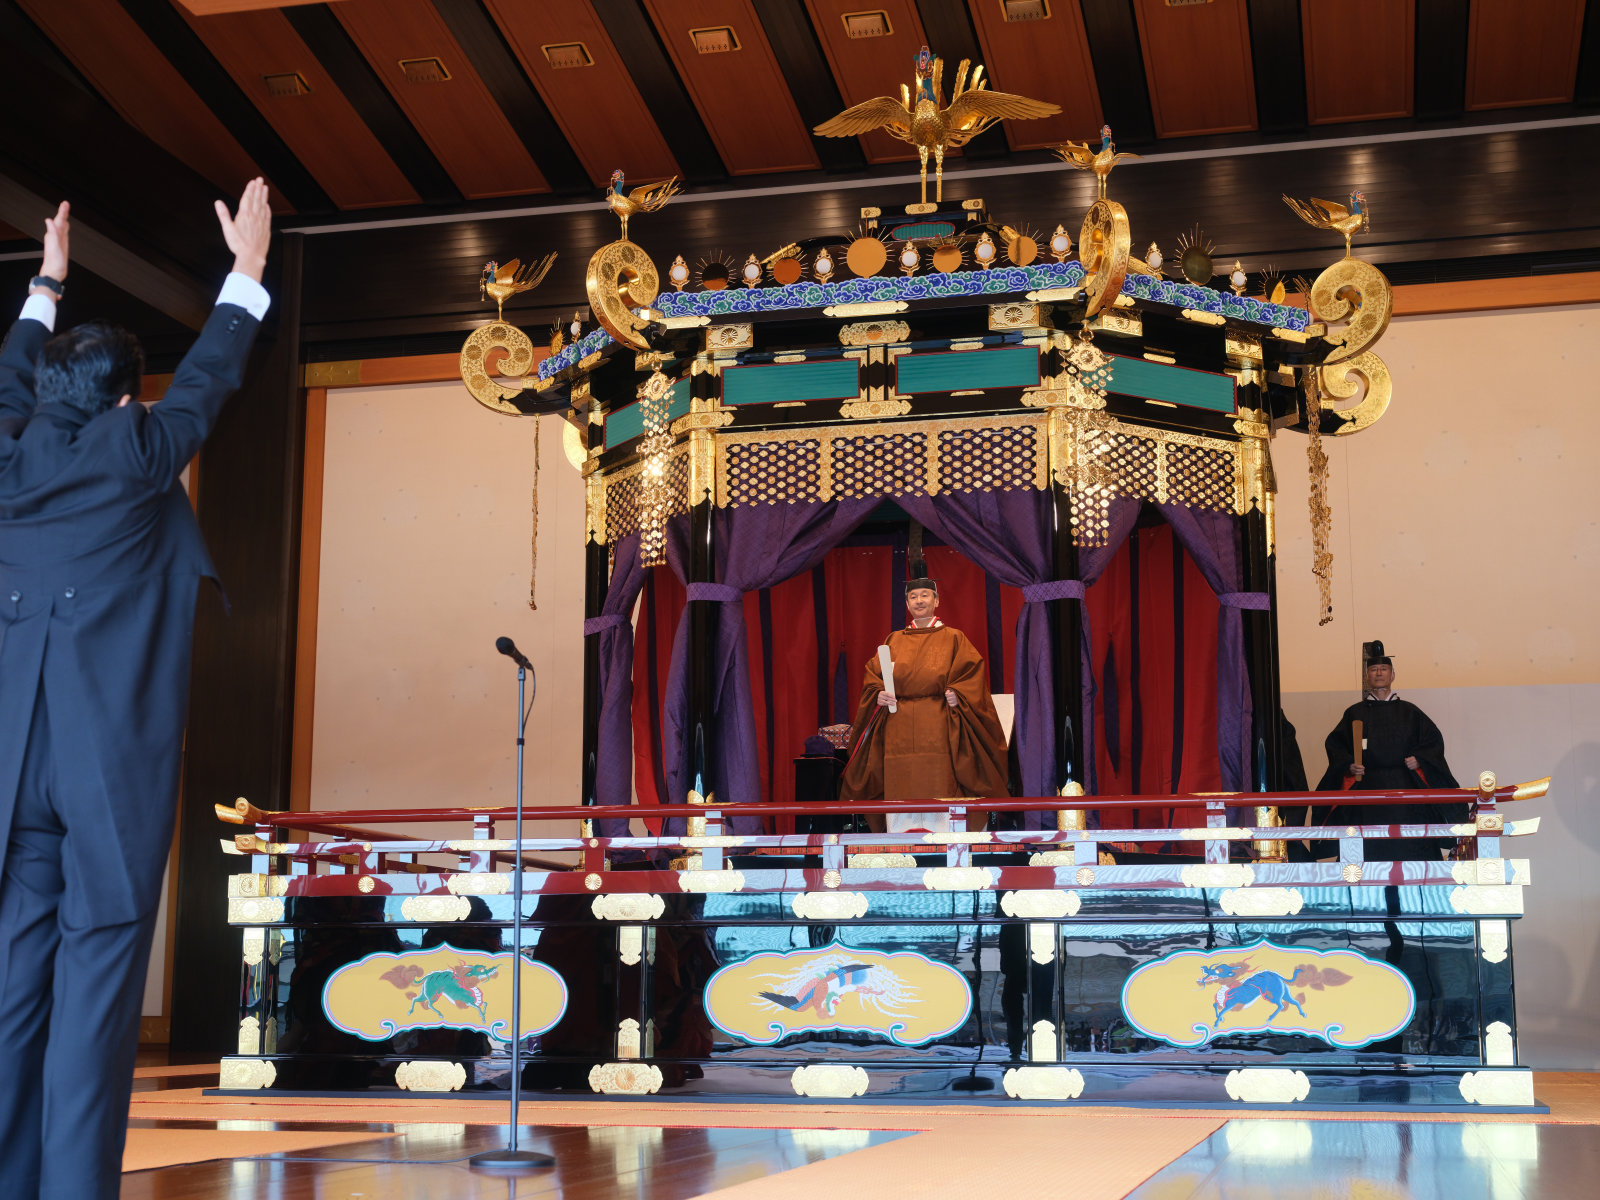 Ceremony of the Enthronement of His Majesty the Emperor at the Seiden8